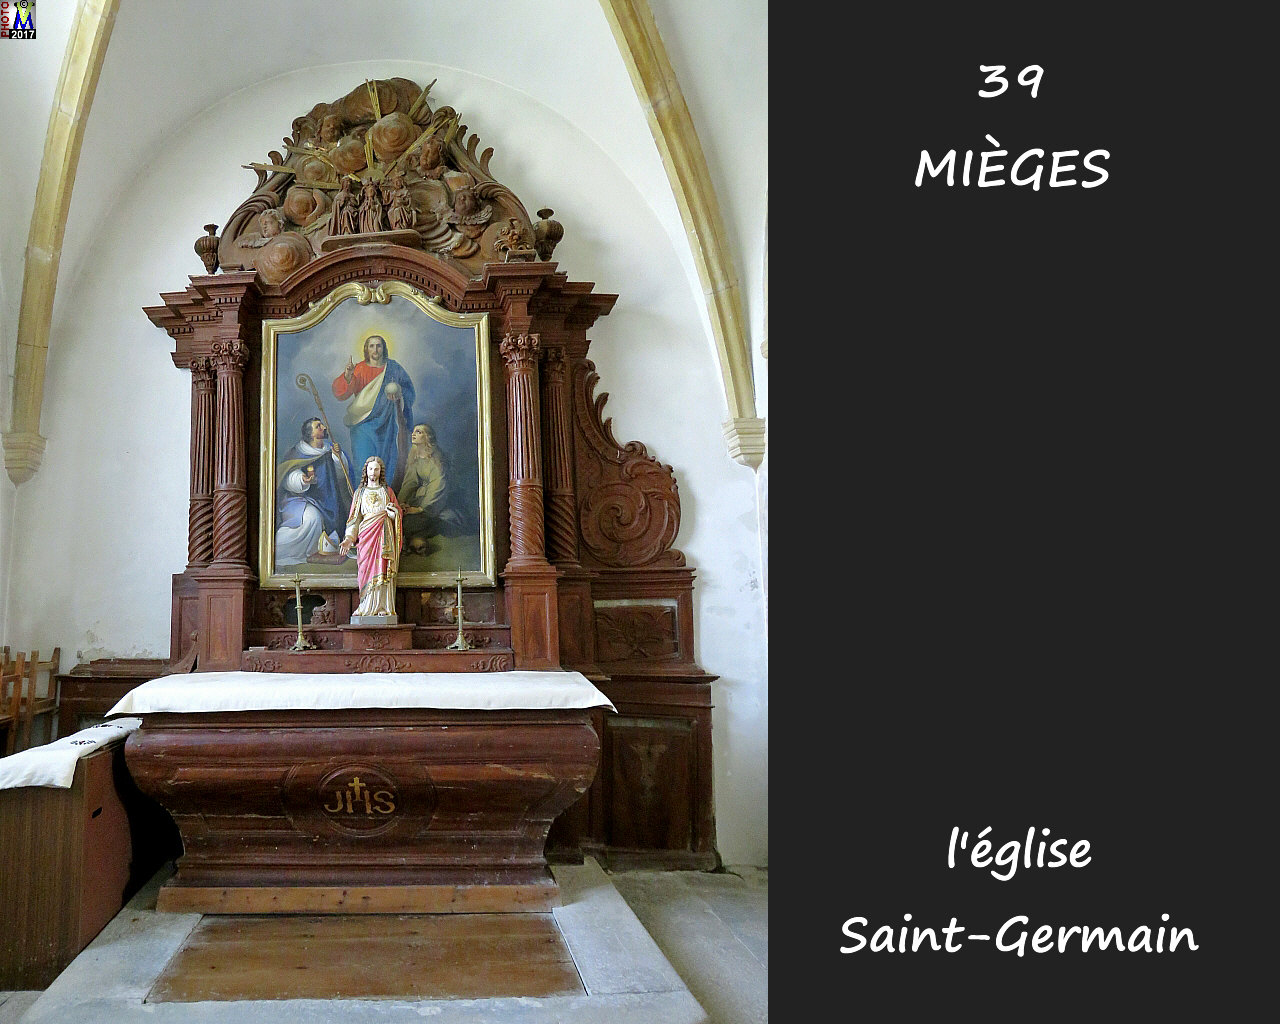 39MIEGES_eglise_224.jpg